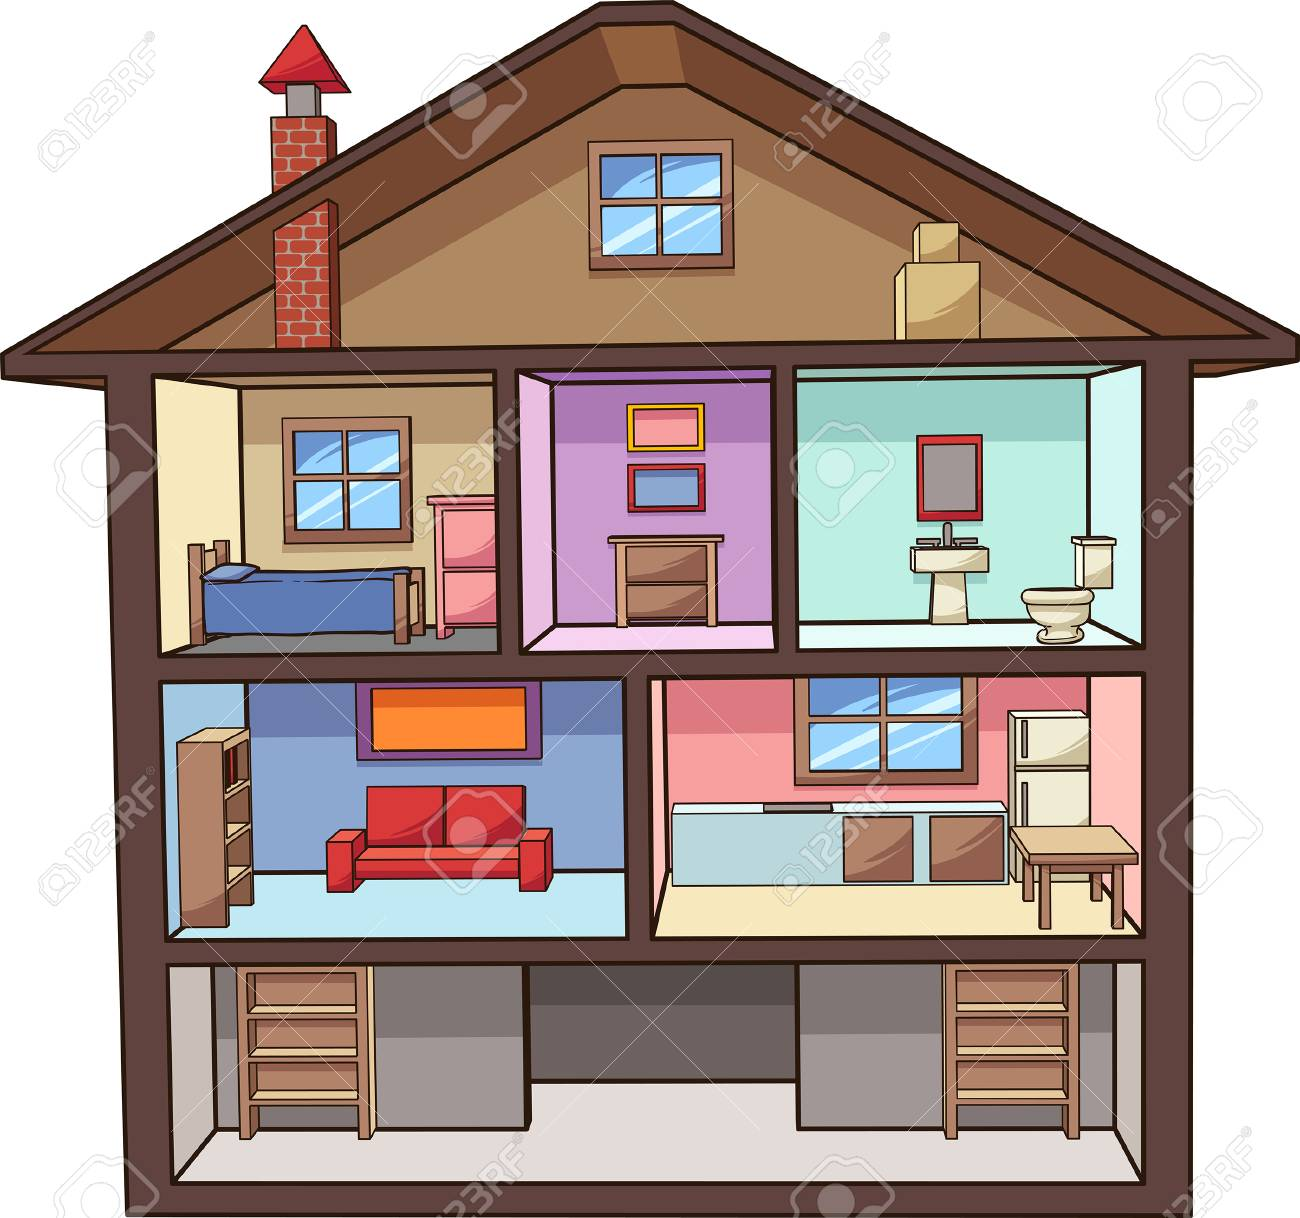 Cartoon House Interior Vector Clip Art Illustration With Simple Royalty Free Cliparts Vectors And Stock Illustration Image 96366375